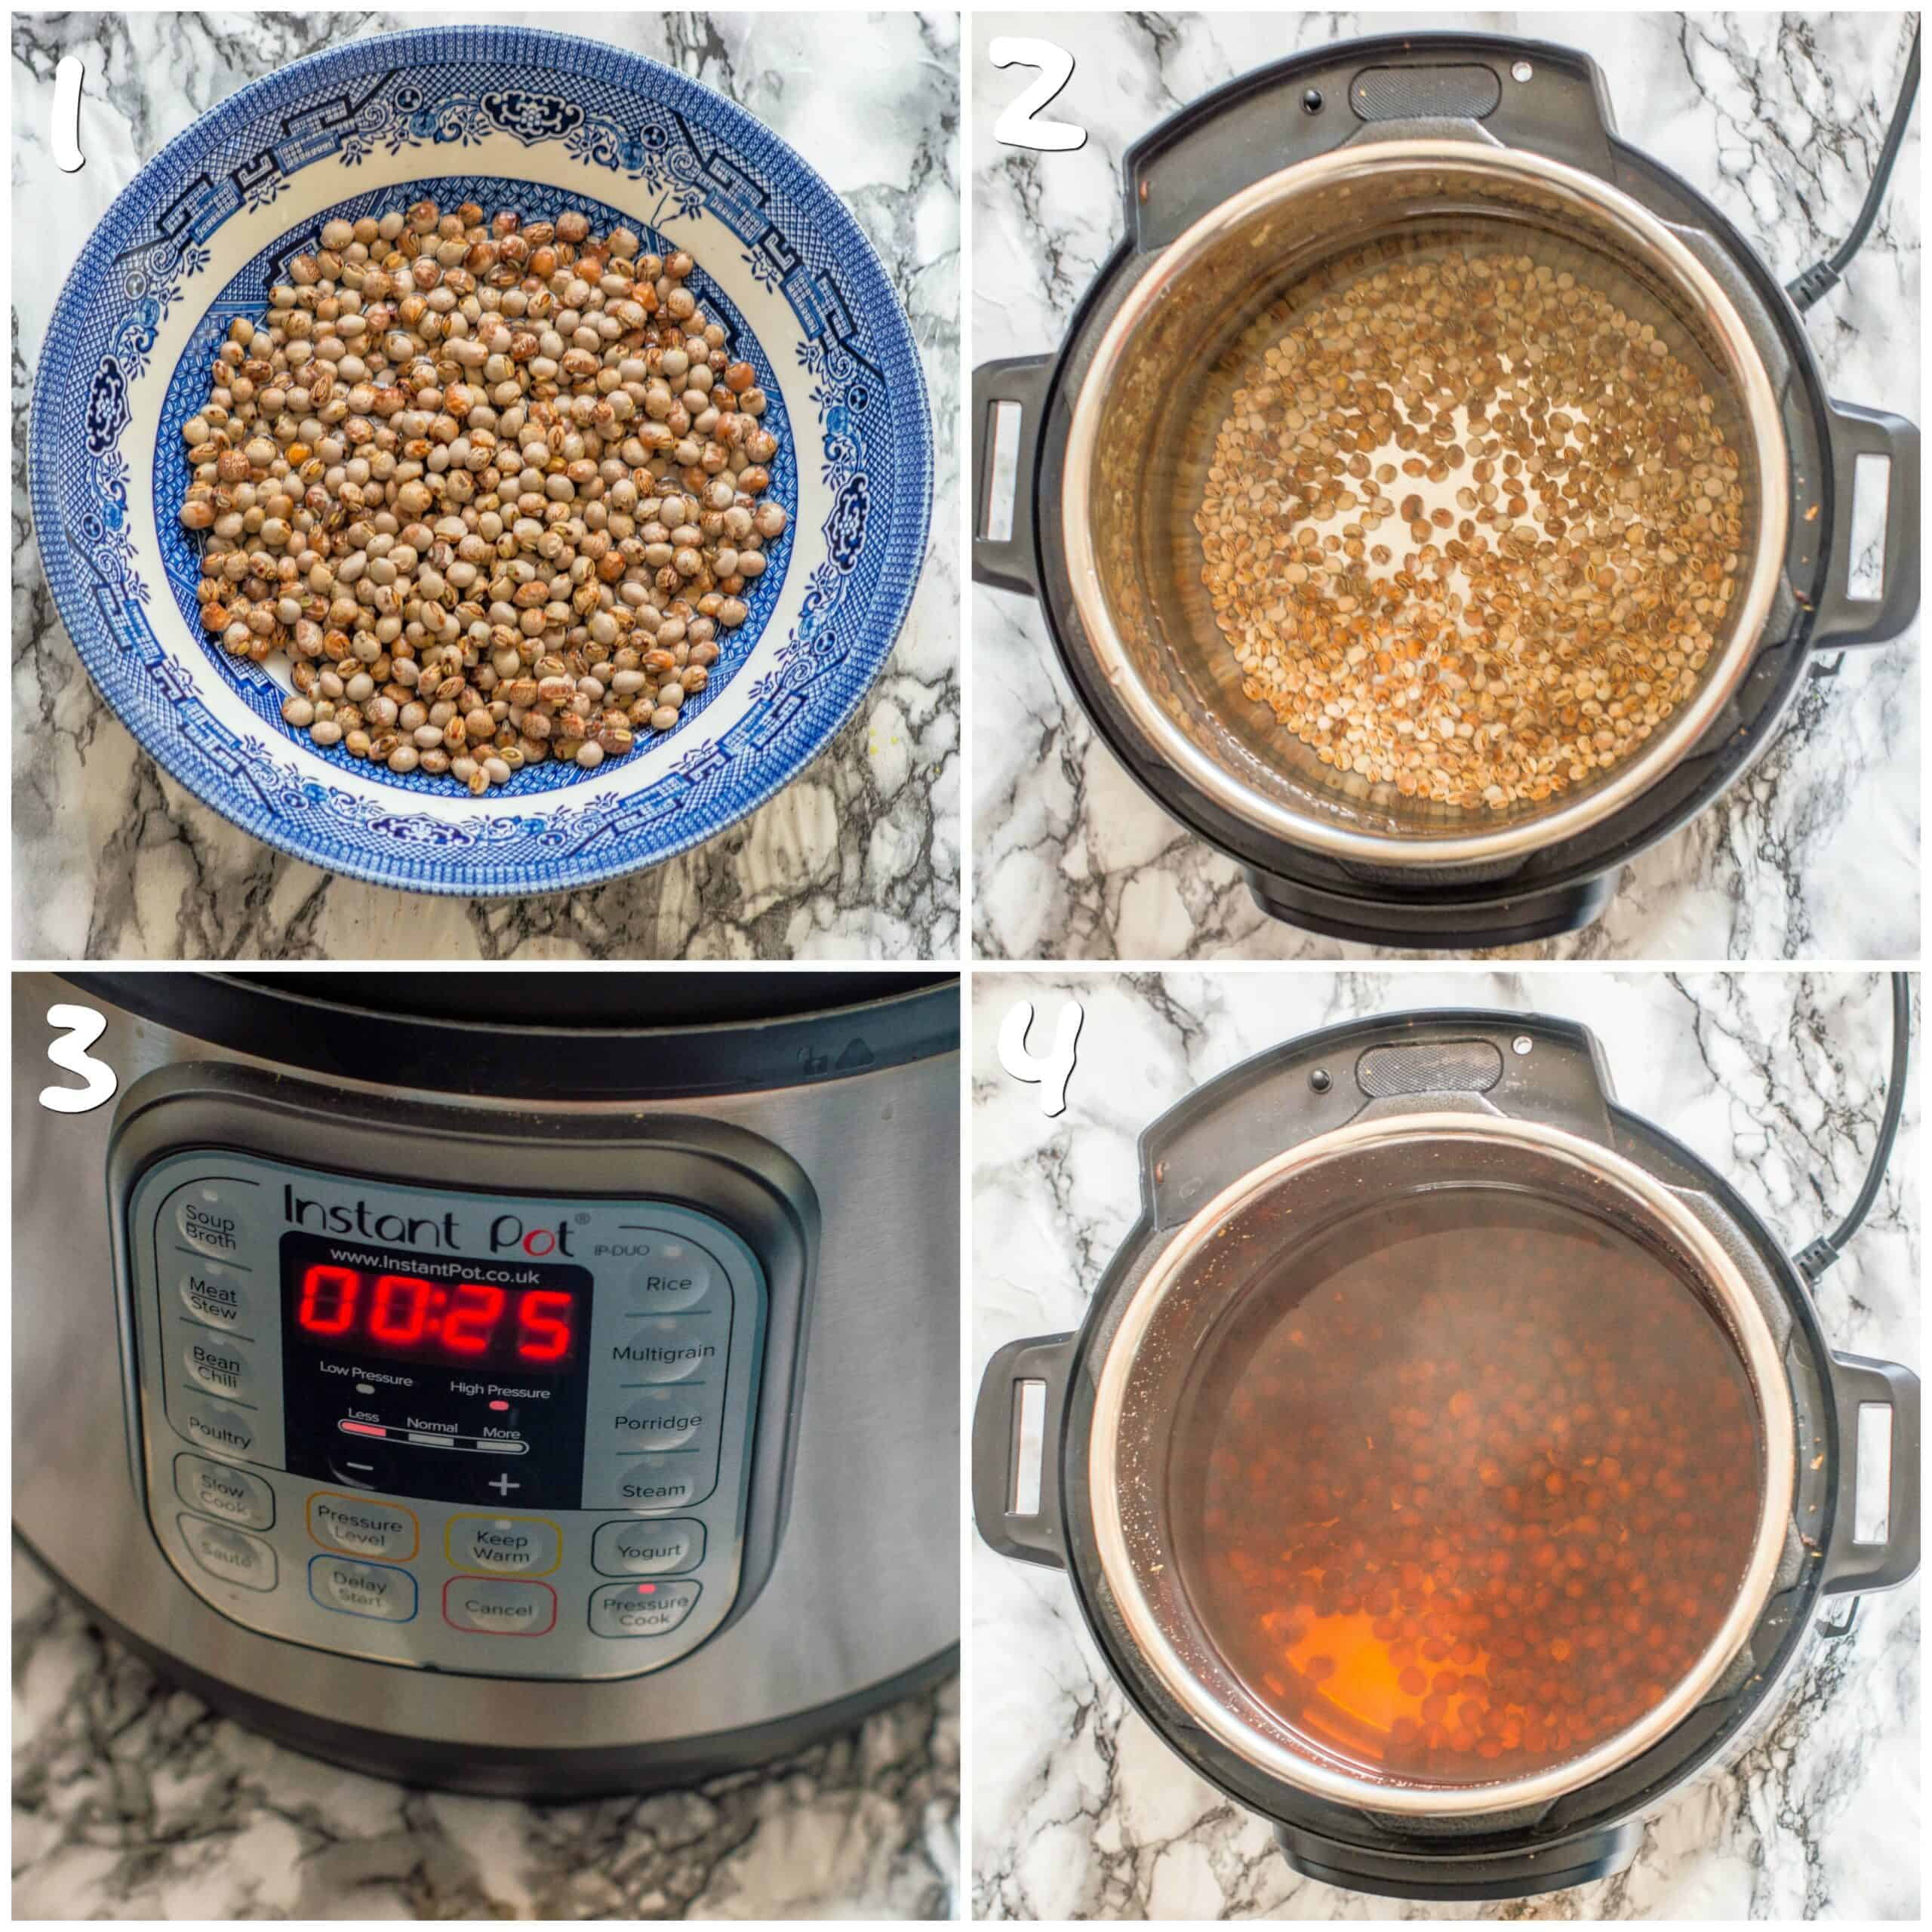 steps 1-4 for cooking gungo peas in an instant pot